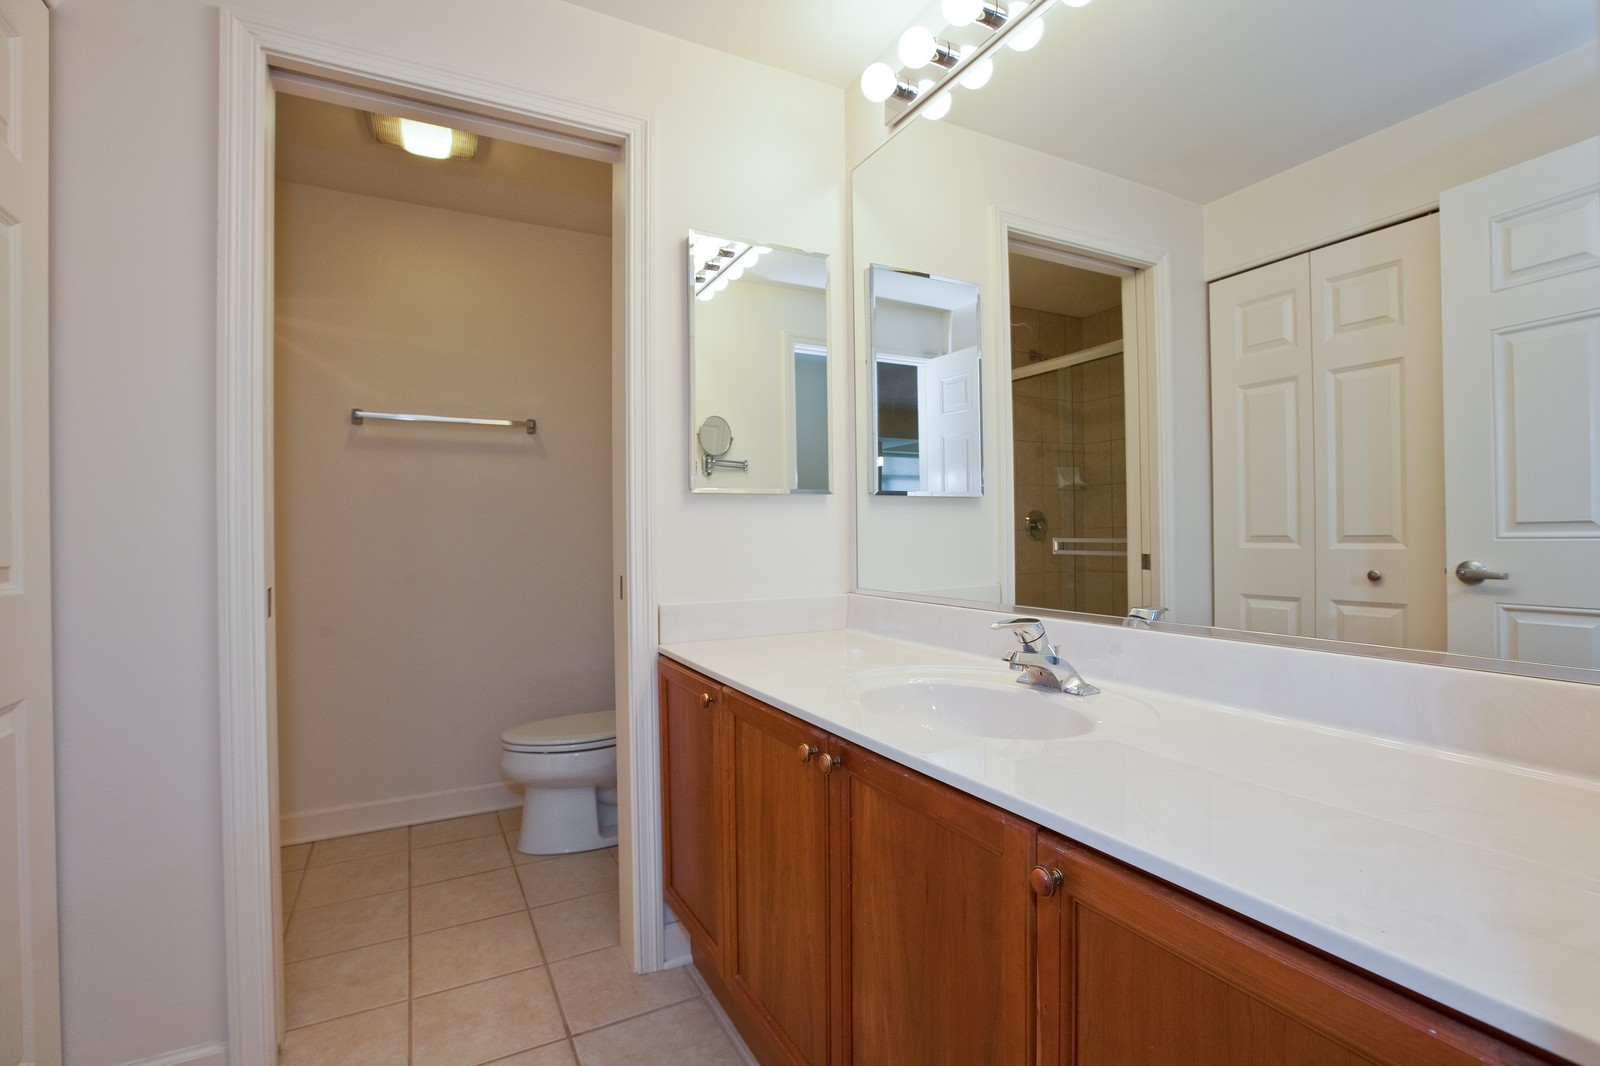 Real Estate Photography - 865 E 22nd St, Unit 510, Lombard, IL, 60148 - Bathroom